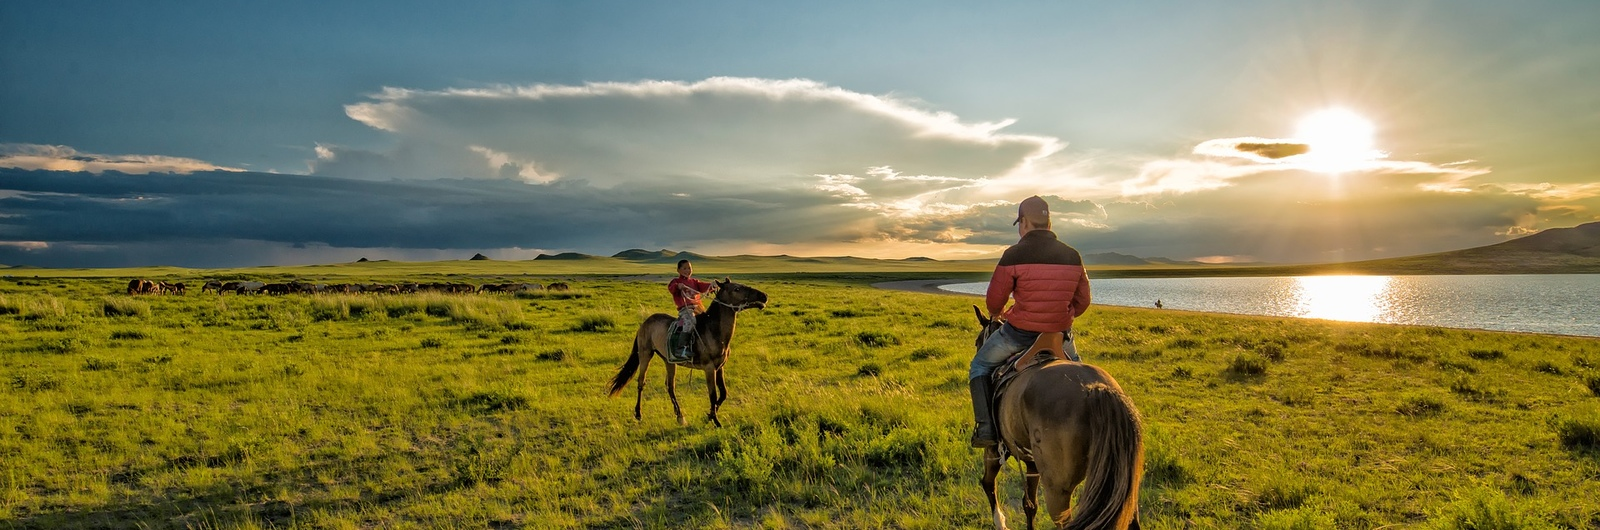 city header mongolia horseback